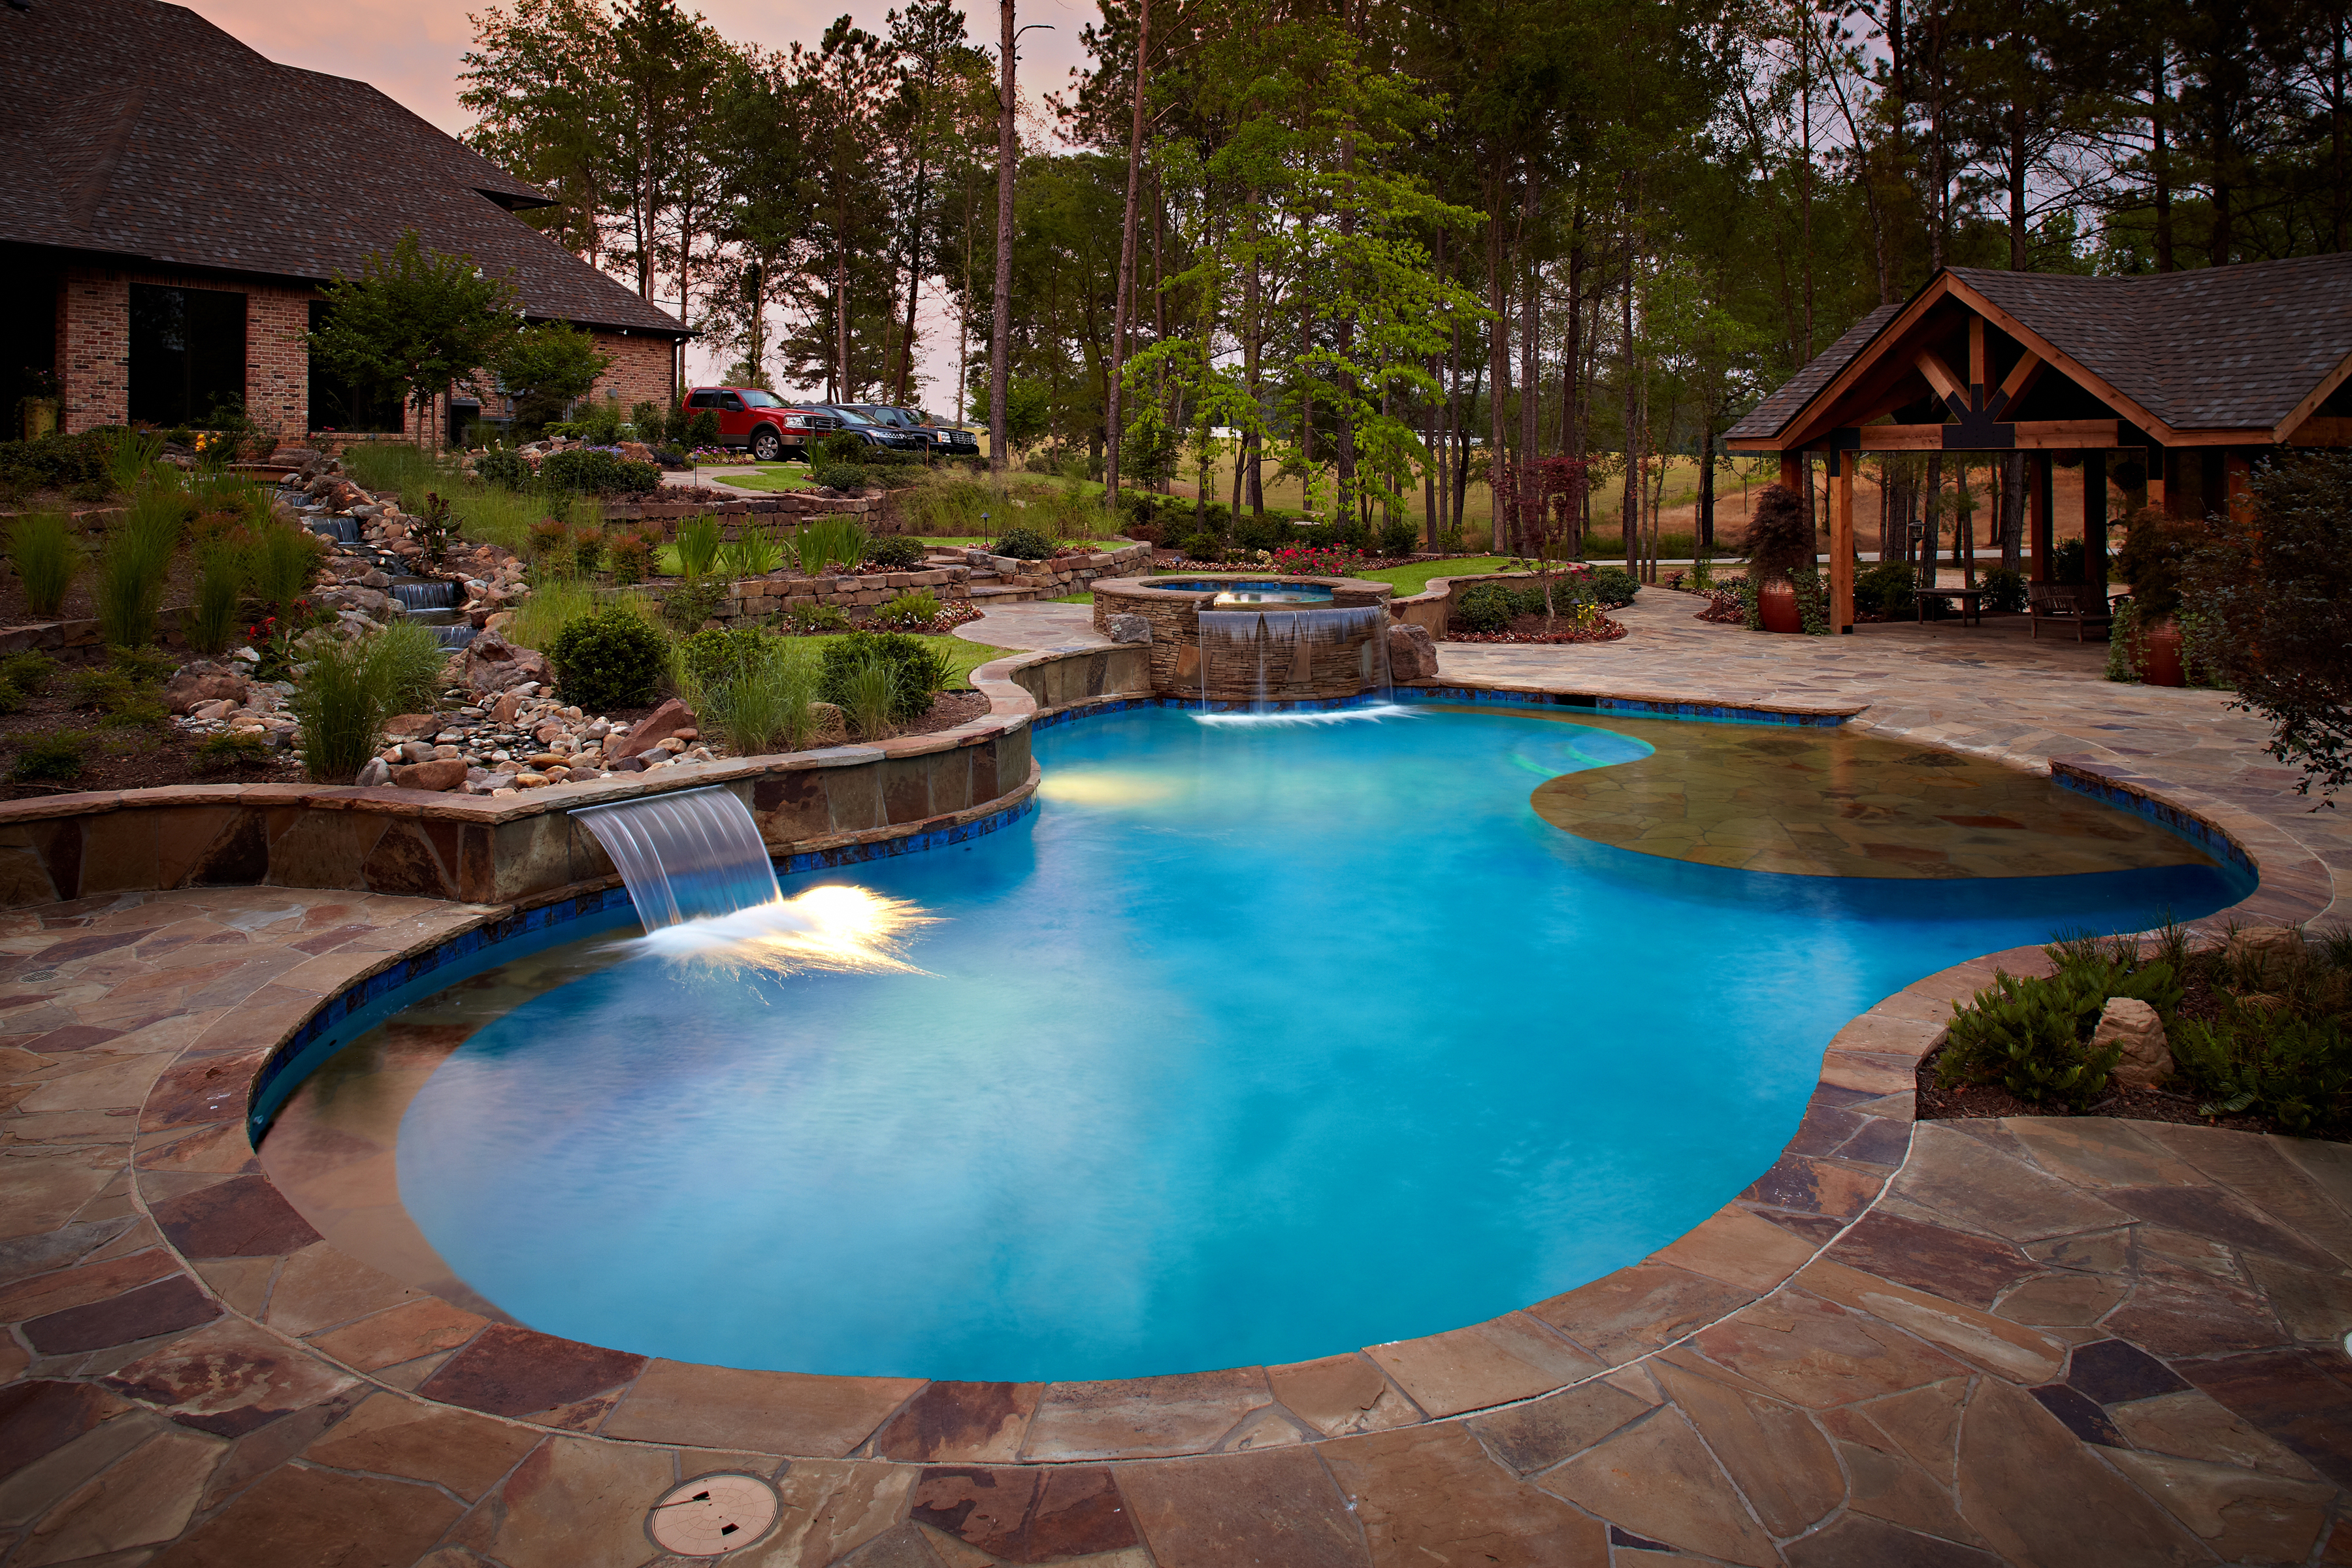 River rock river flowing down into pool designed by CCH Pools, landscaping done by Tucker and Associates